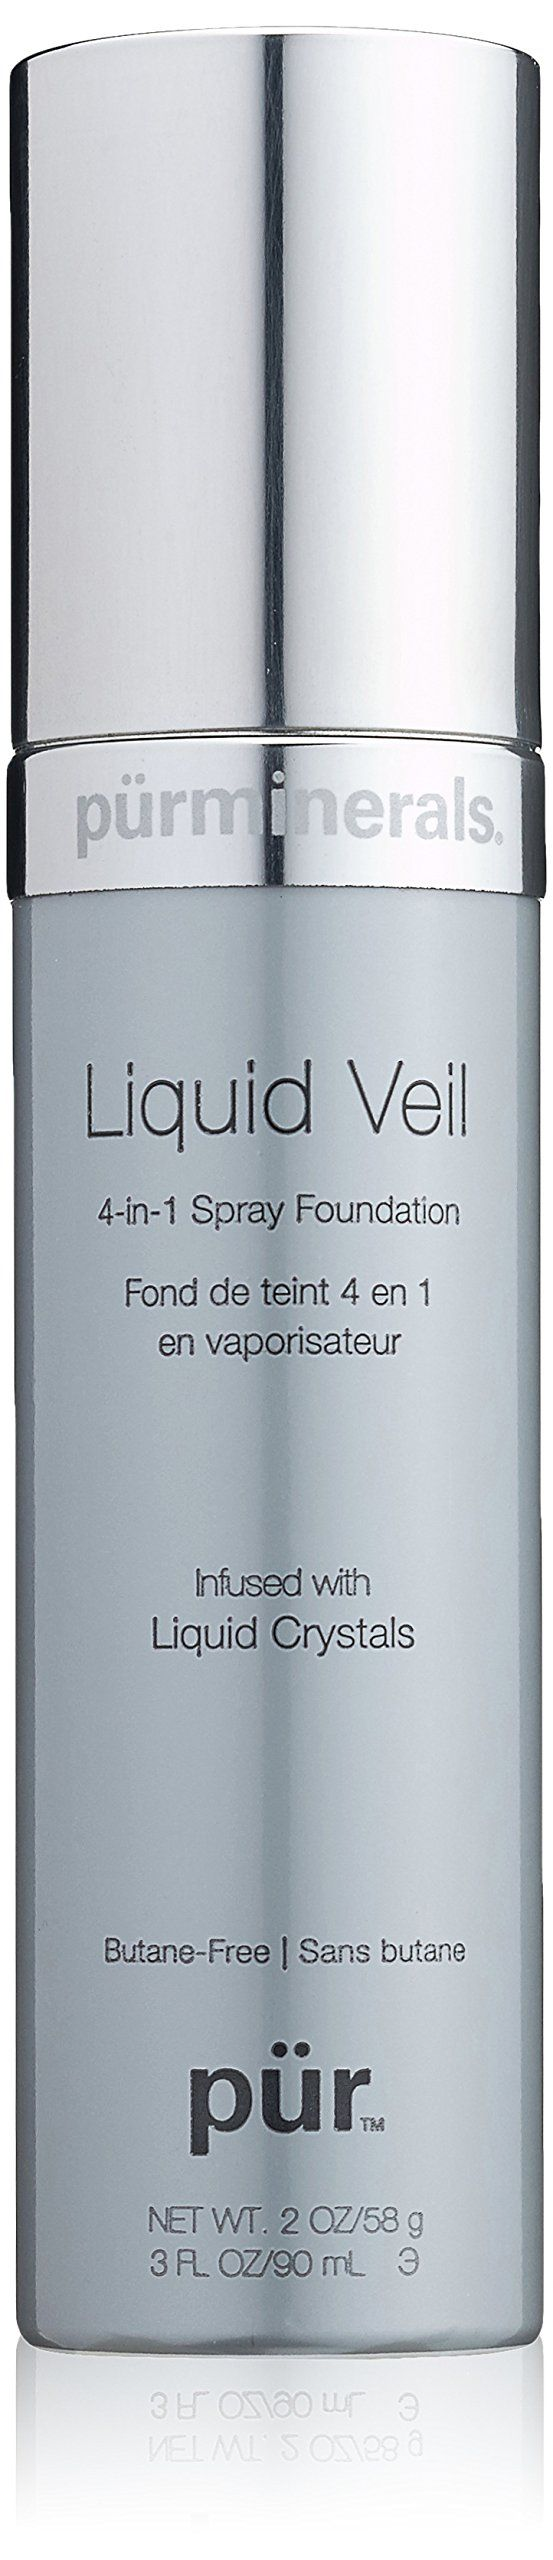 Pur Minerals Liquid Veil 4-in-1 Spray Foundation, Light, 3 Fluid Ounce. Achieve flawless, airbrushed coverage with a satin finish. Hydrate skin with intensively moisturizing Liquid Crystals. Nourish a smoother, firmer look with Pur's Ceretin Complex.